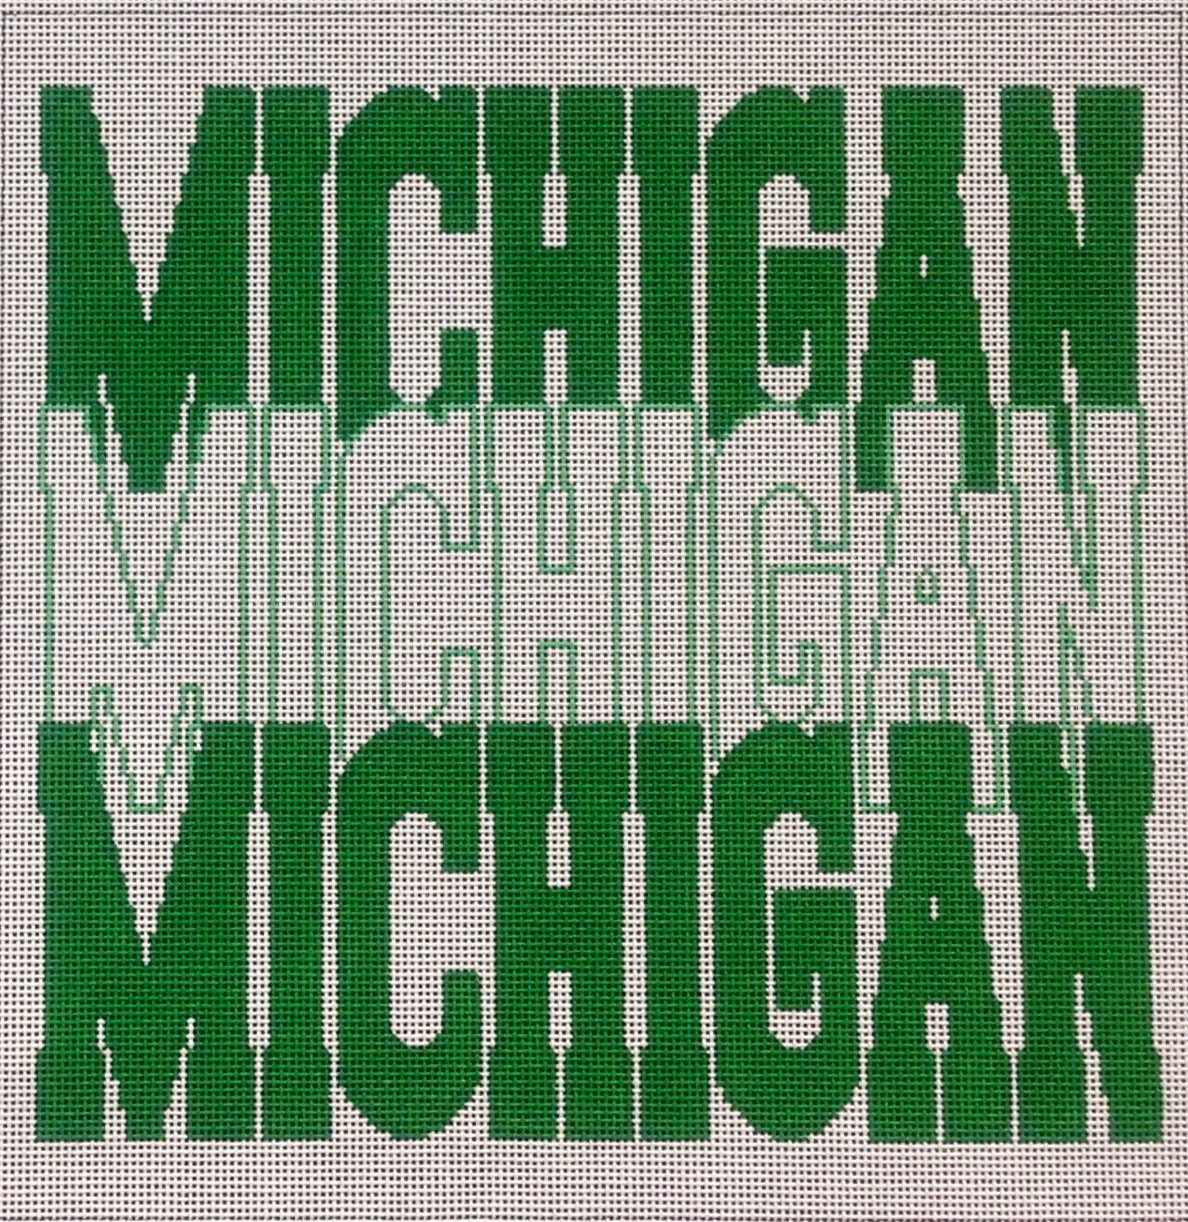 P 319 Name Michigan (St)